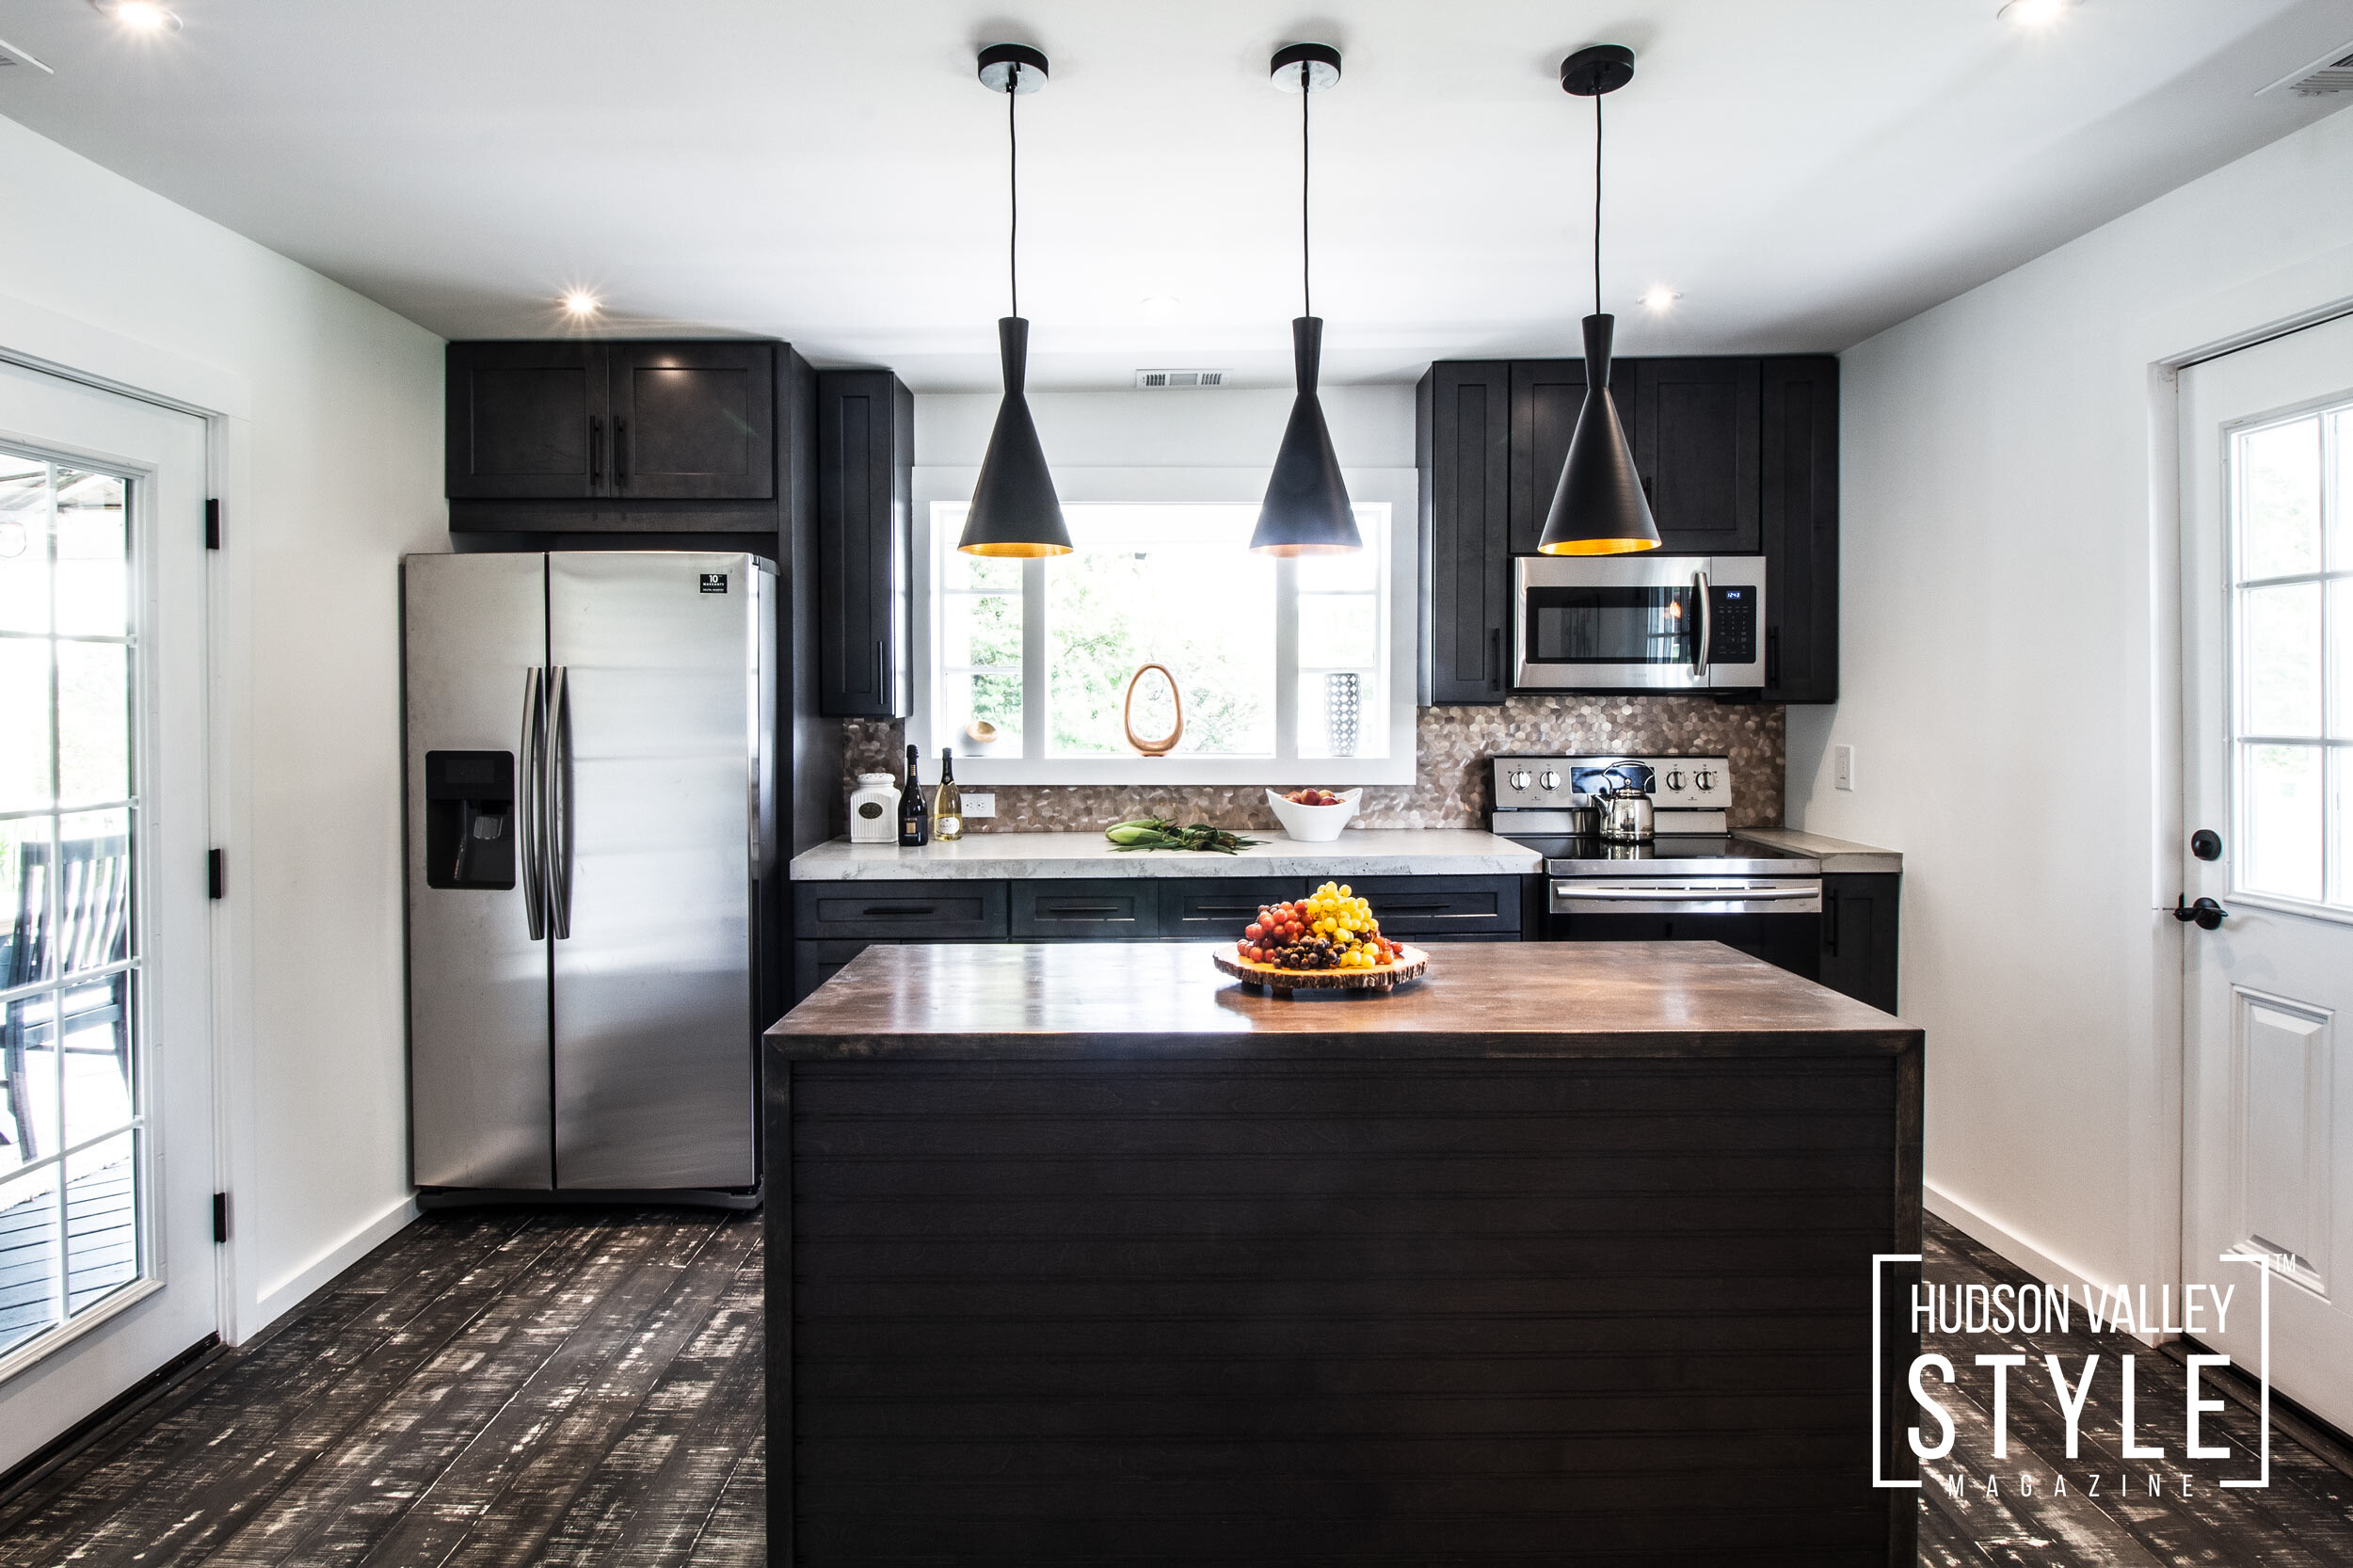 Hudson Valley Style Living with Naomi Harris – 5 Things to Do Before Starting A Kitchen Design Project